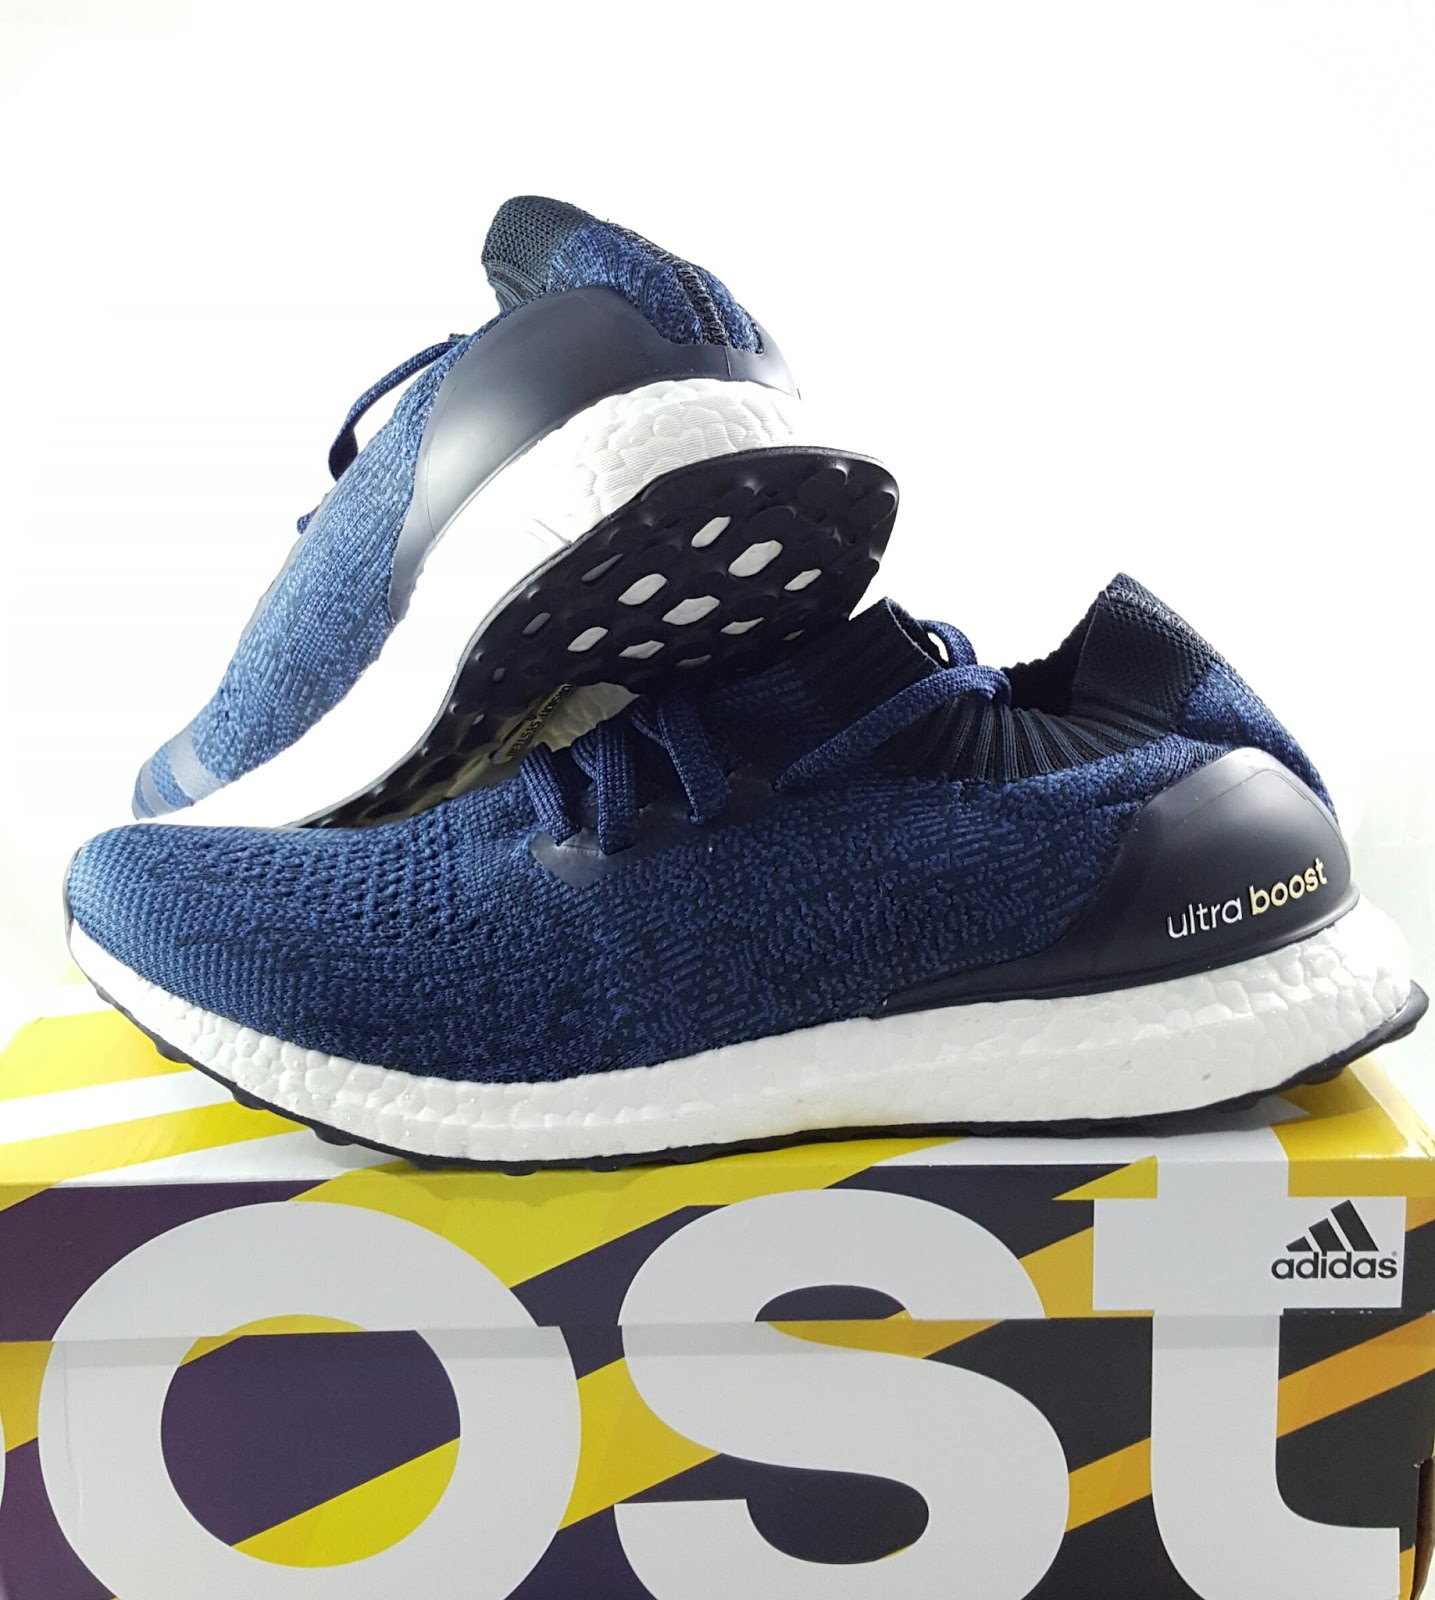 ADIDAS ULTRABOOST UNCAGE NAVY BLUE (SOLD)